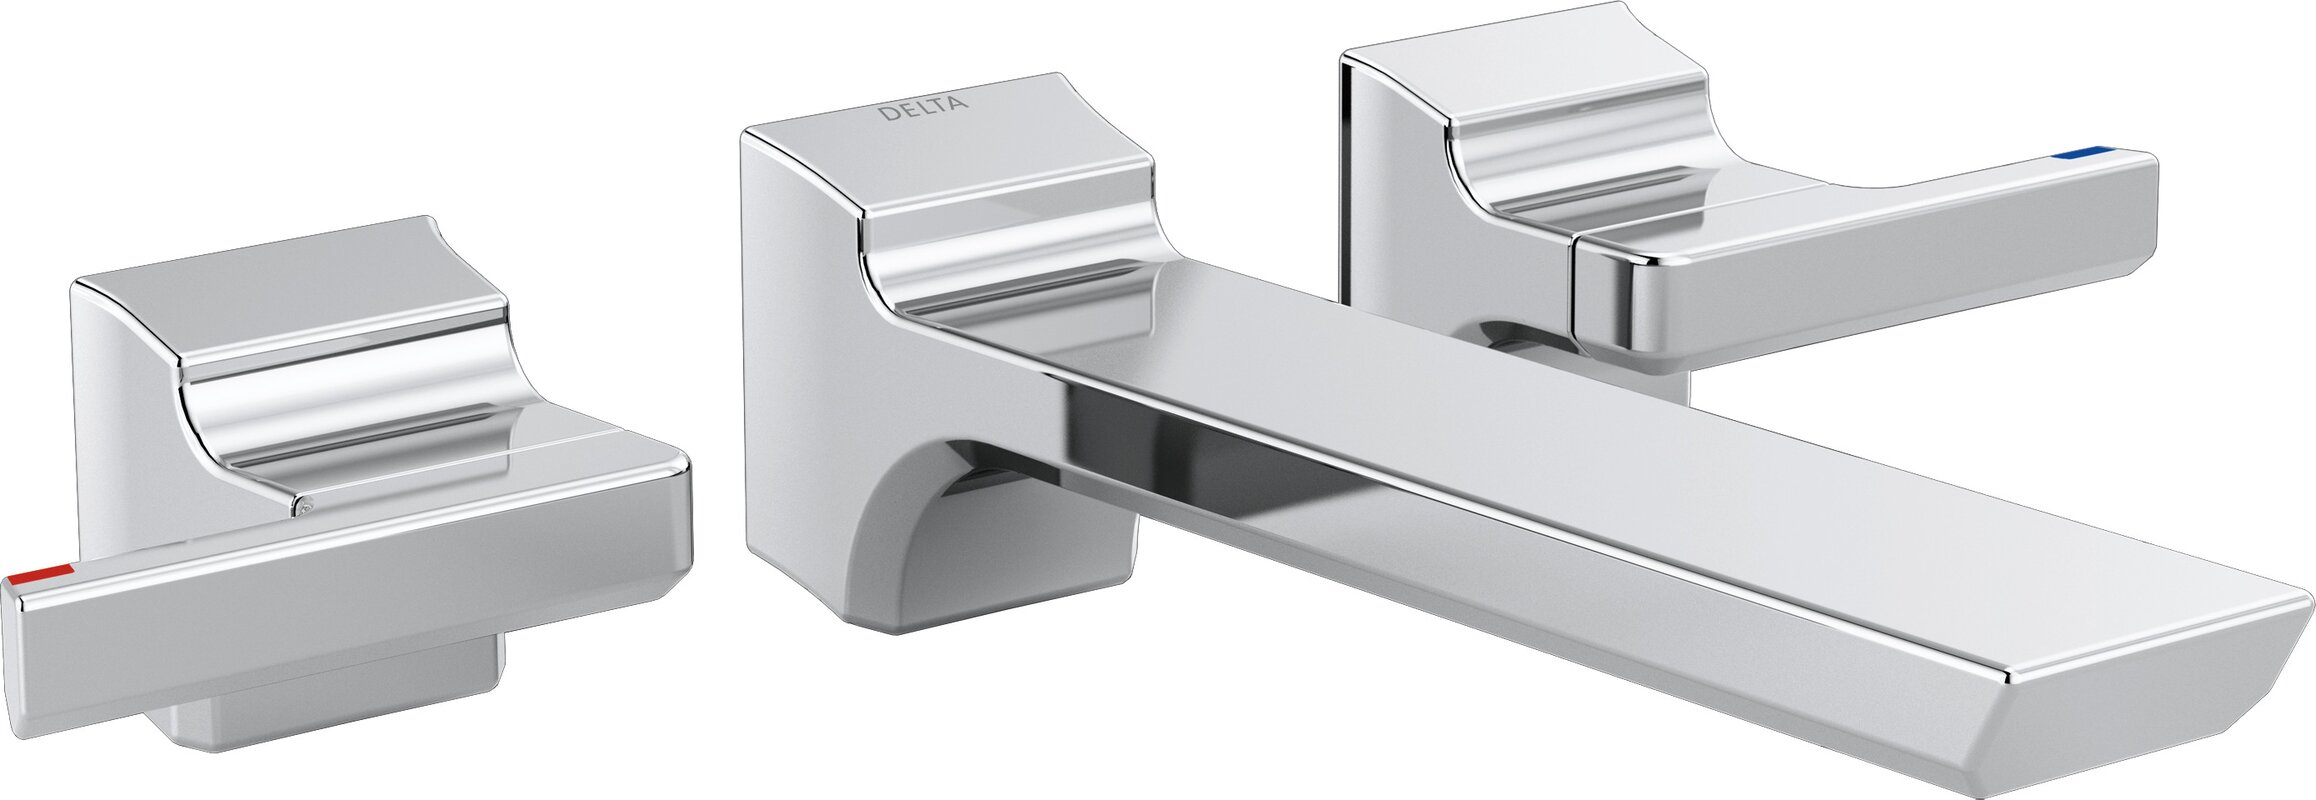 Delta Pivotal Double Handle Wall Mounted Tub only Faucet Trim ...